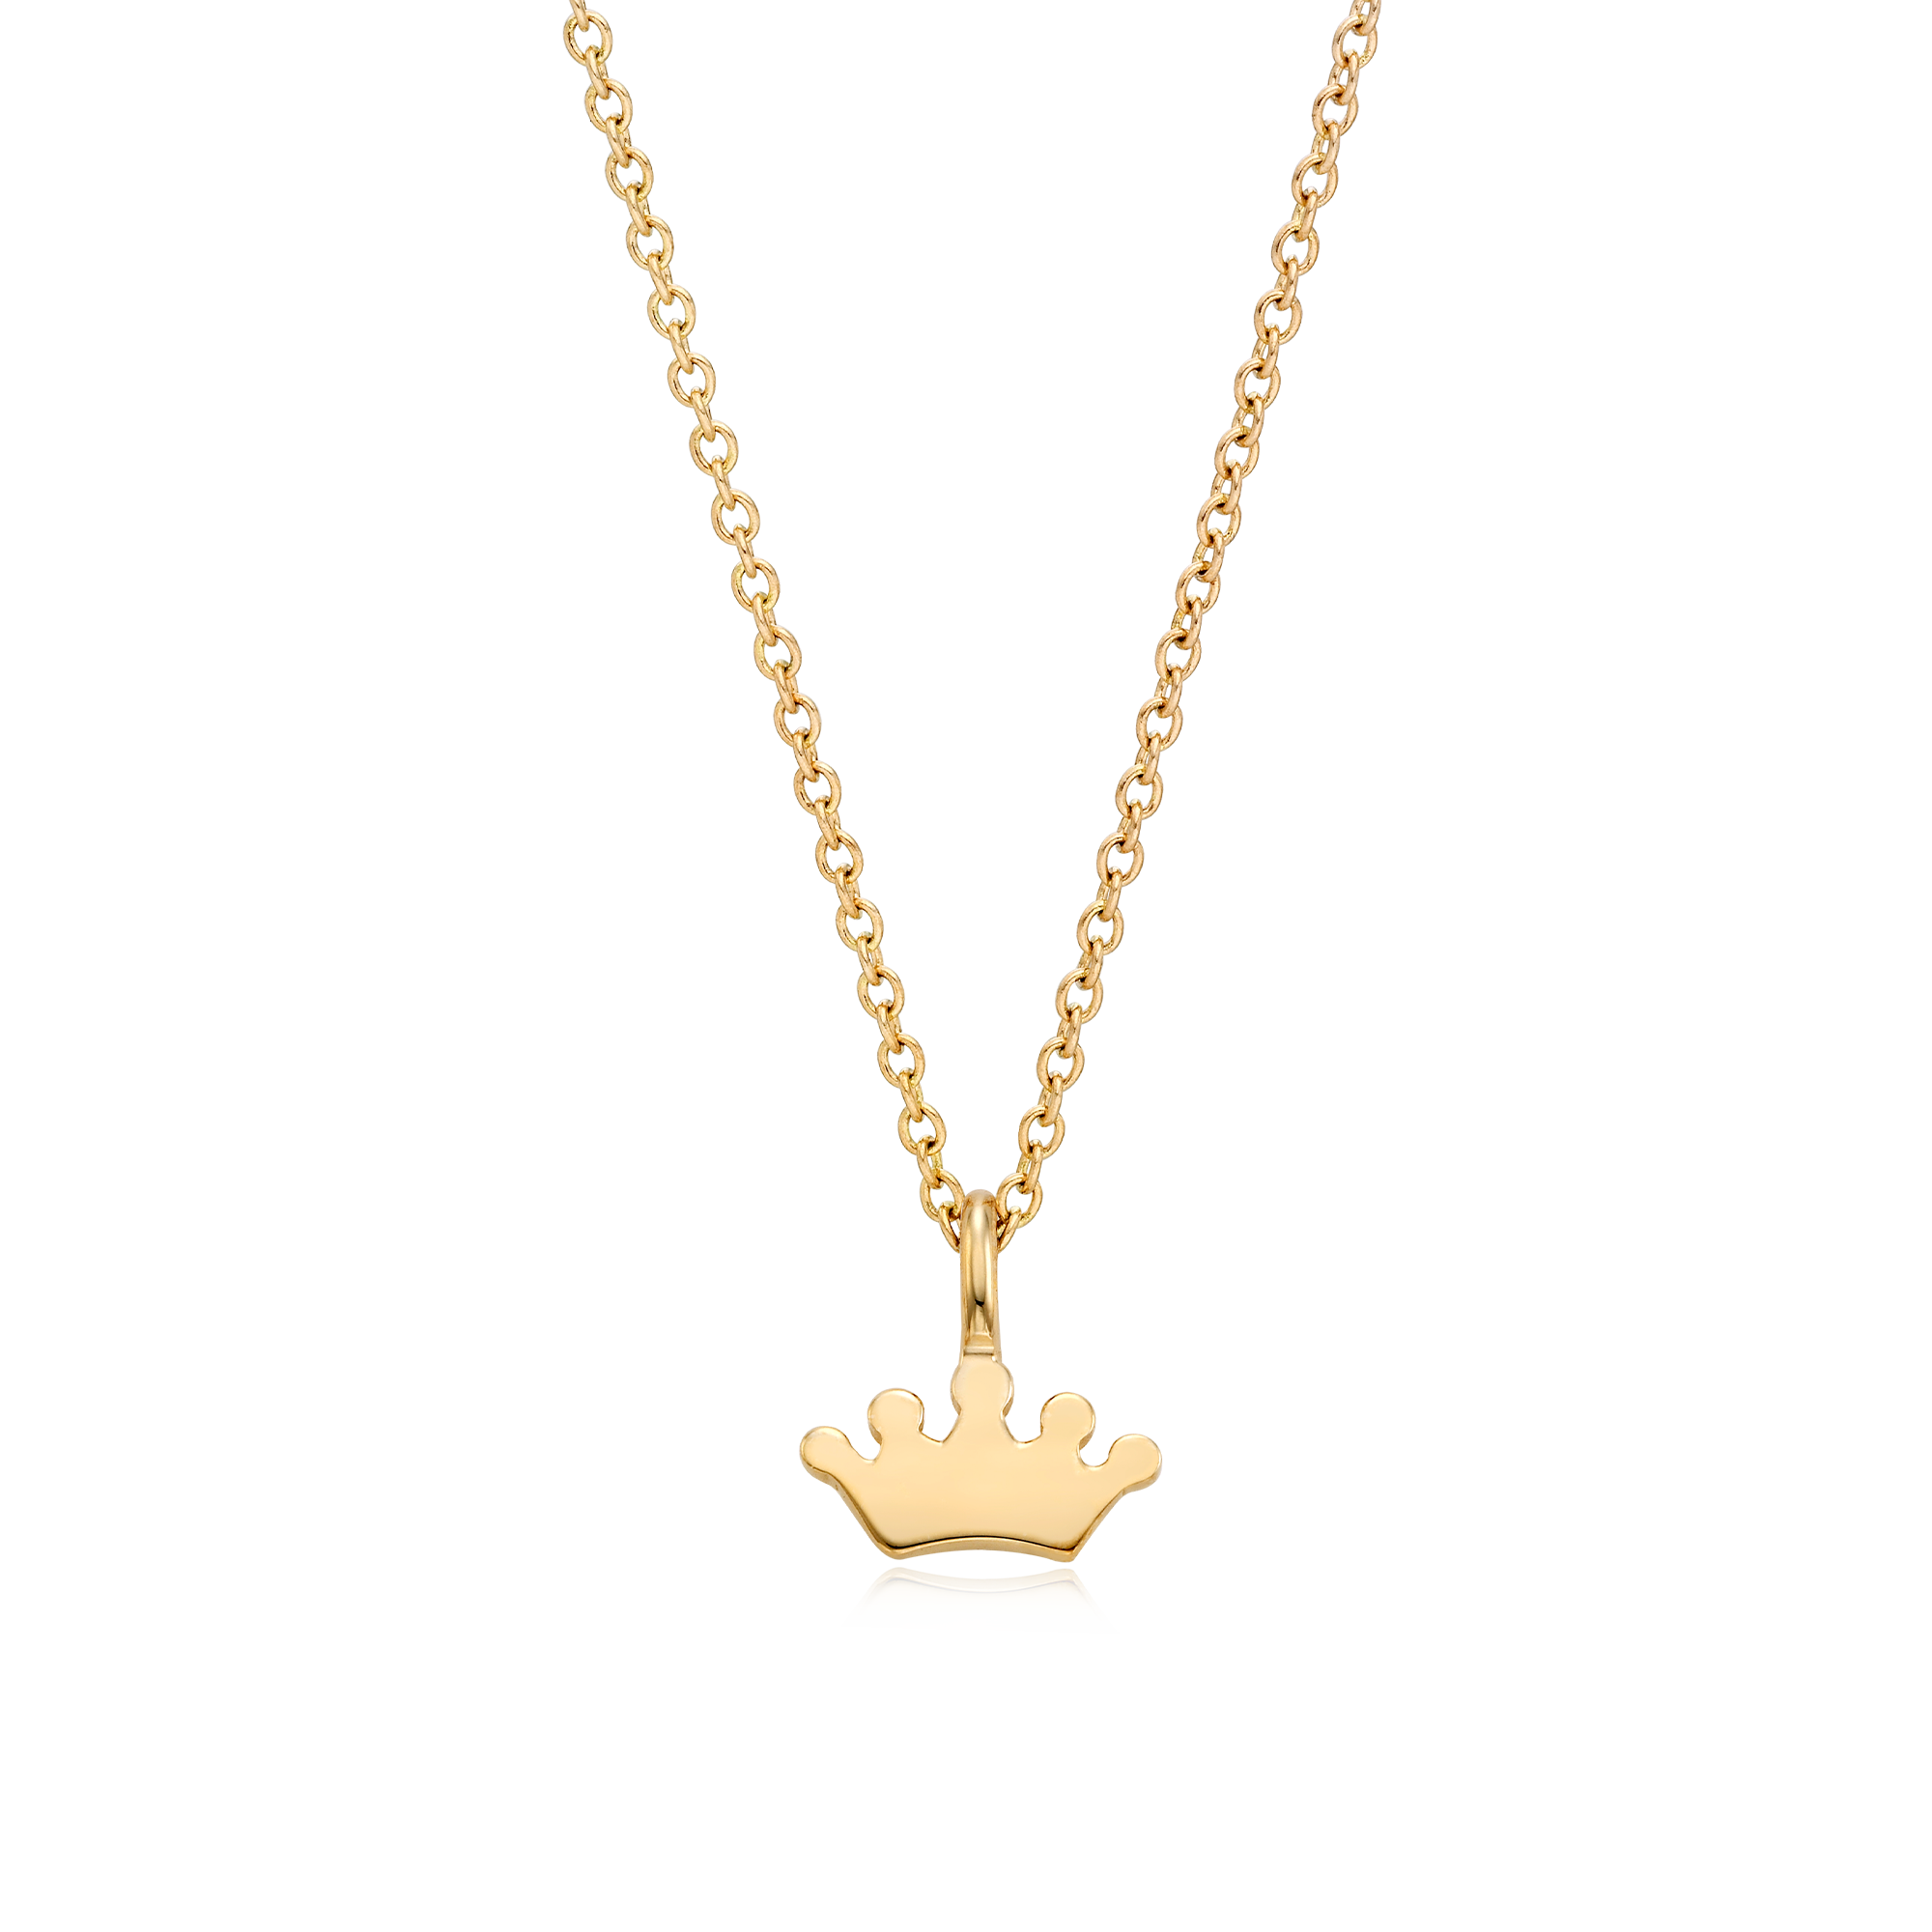 14K/18K Gold Kaiu Hope Necklace - Crown Necklace